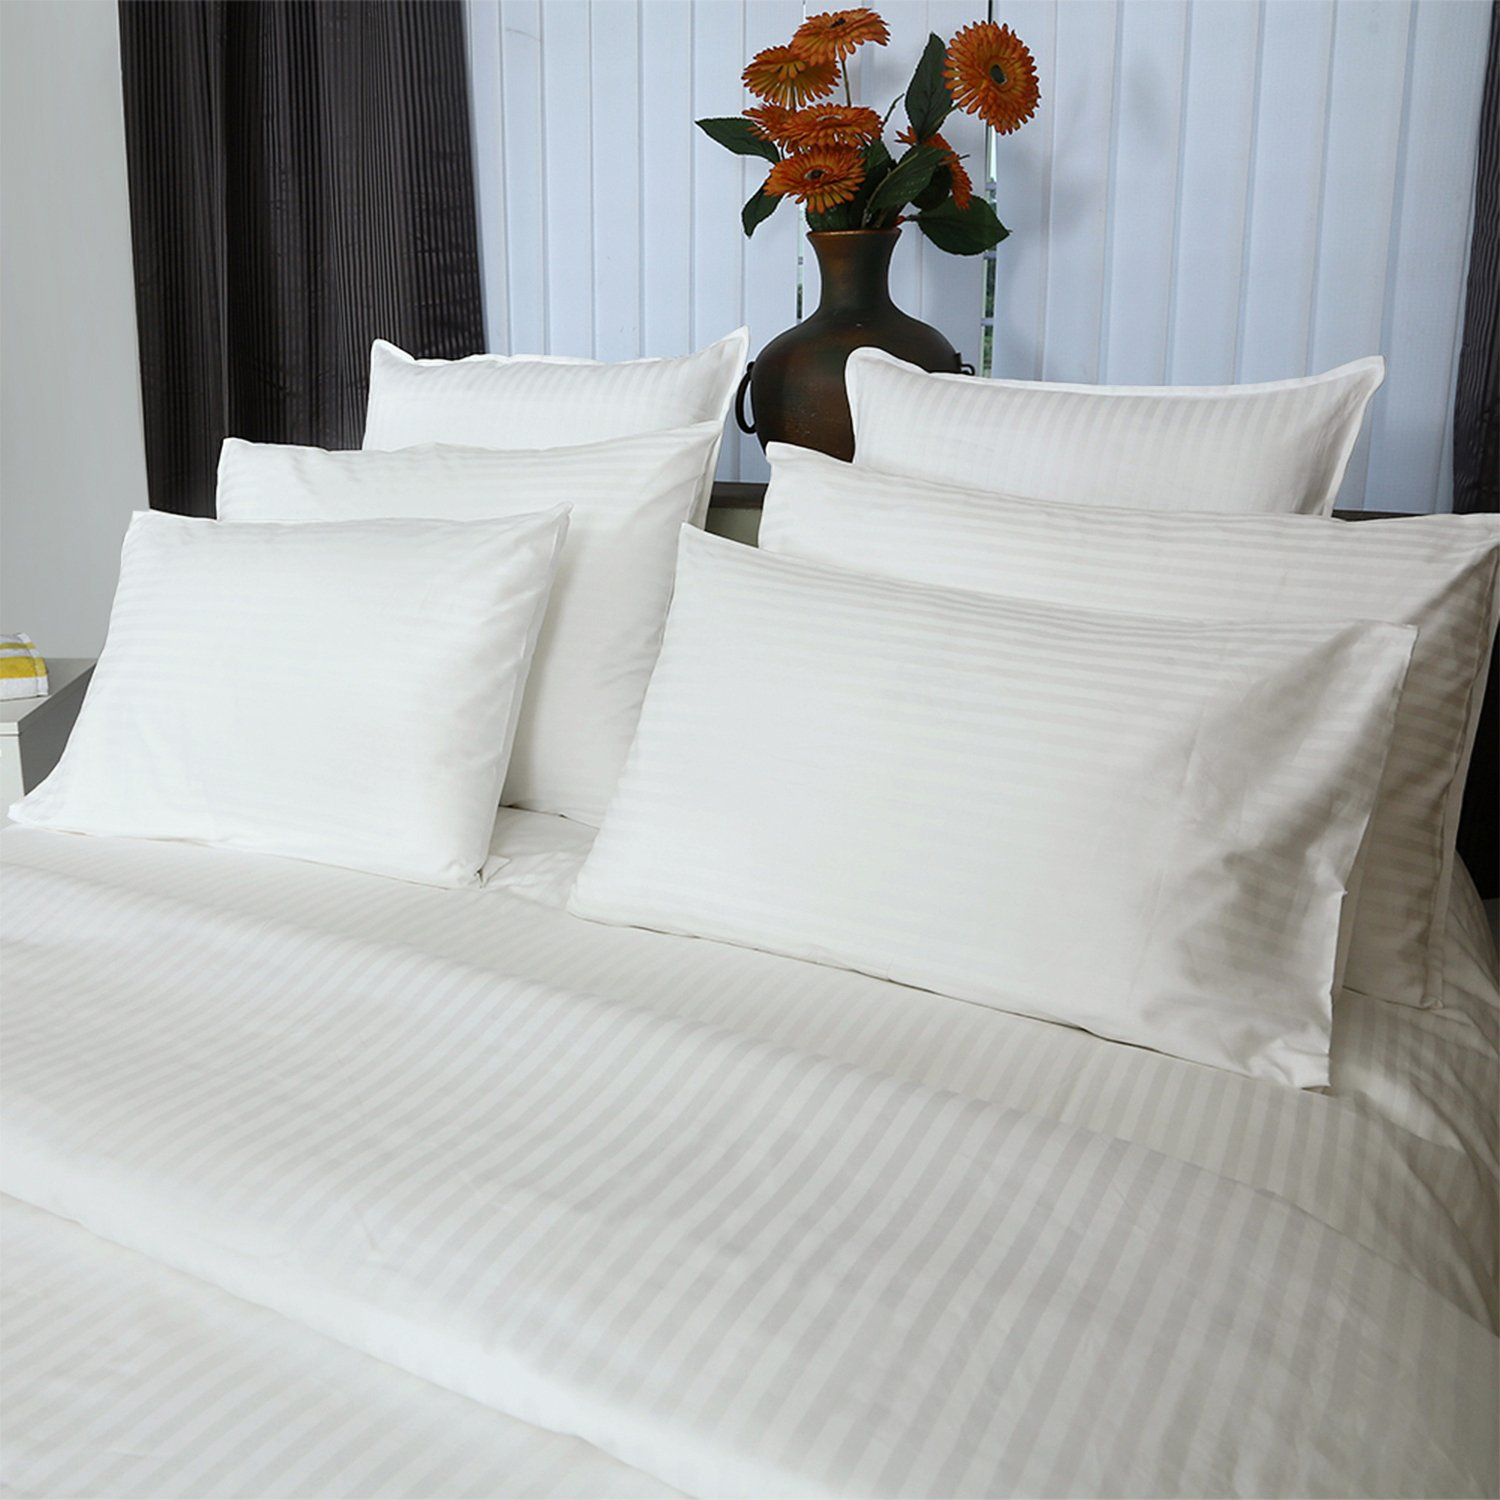 Just Linen Hotel Collection 300 Thread Count 100% Cotton Sateen, Striped White, Pencil Striped Pack of 4 Queen Pillowcases